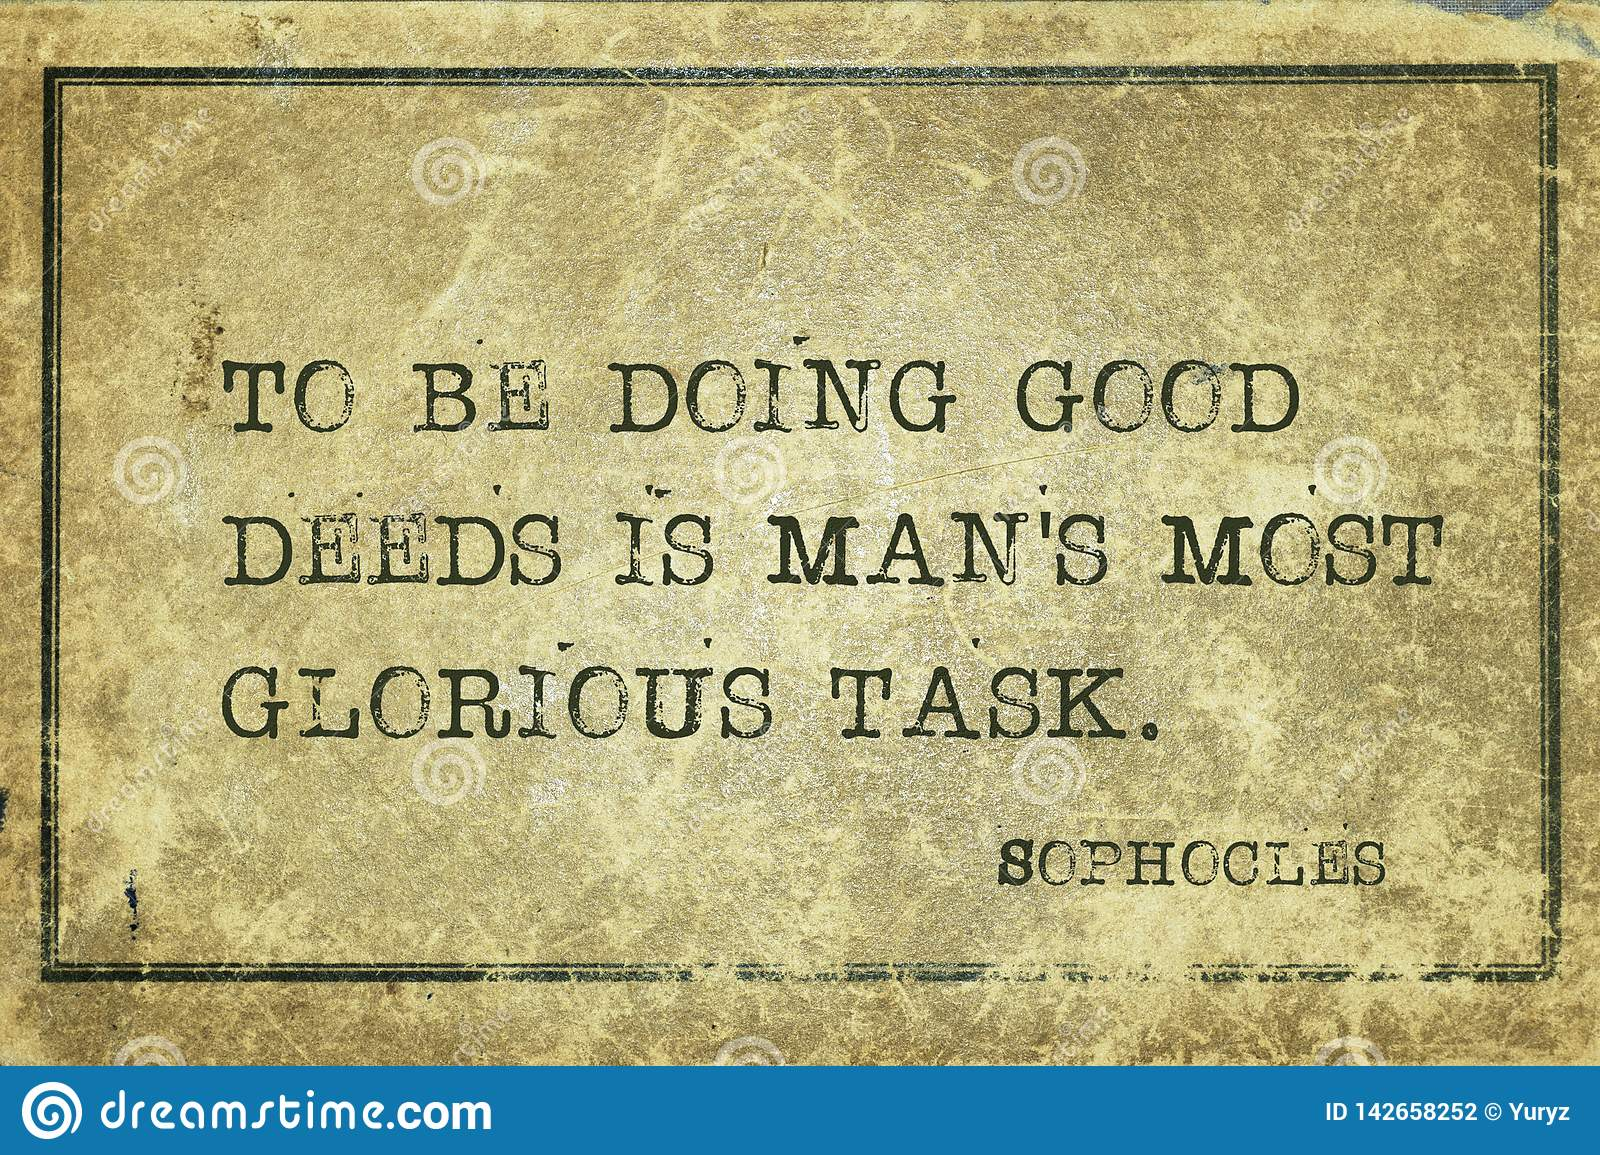 Glorious task Sophocles